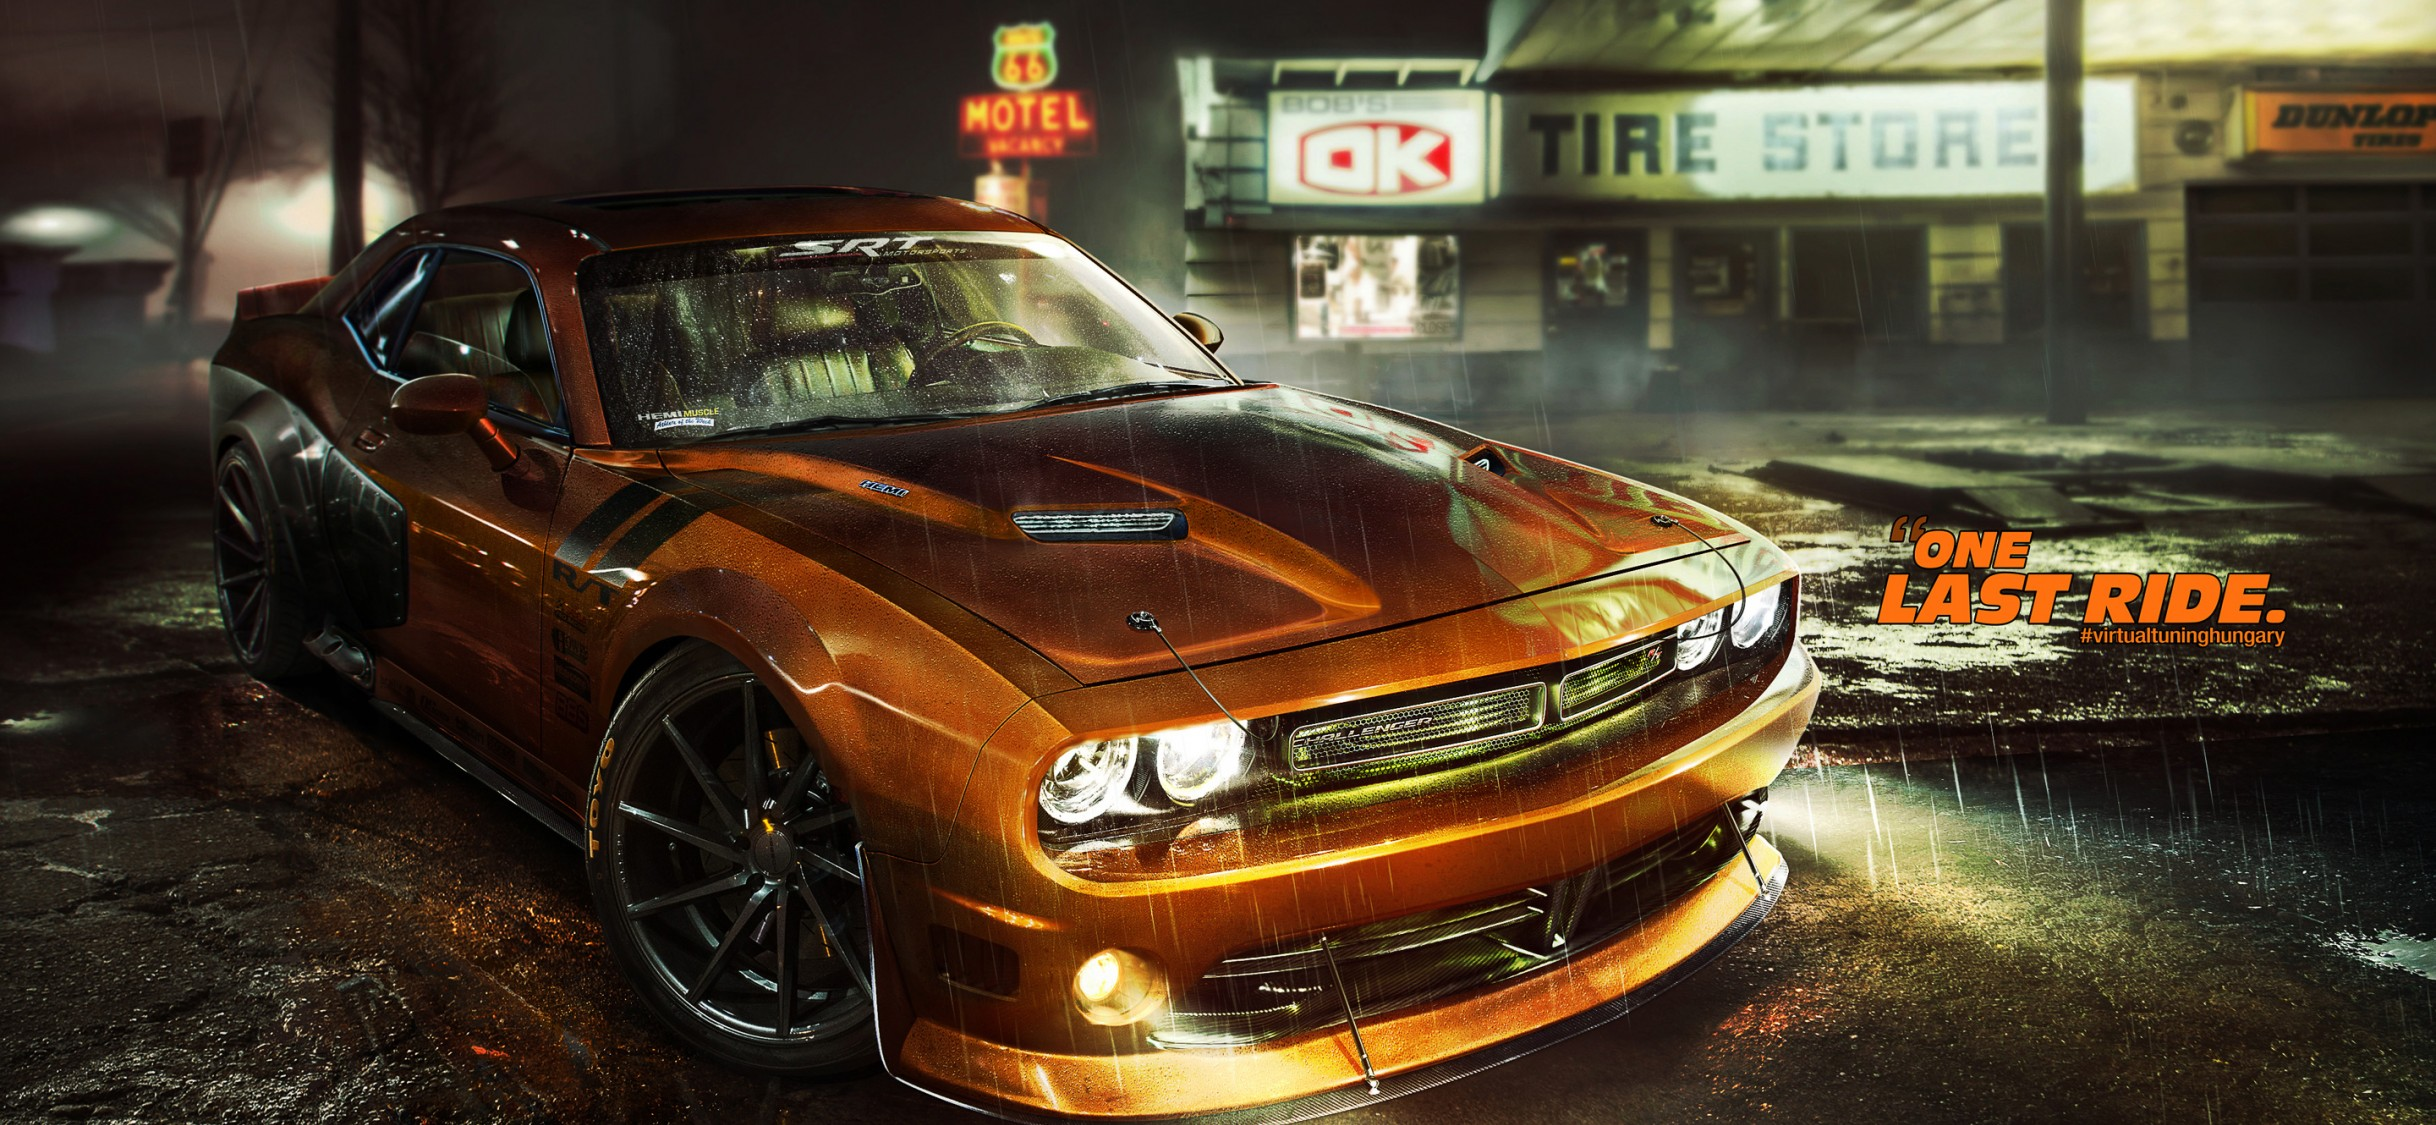 Dodge Challenger Rt Car Hd Wallpaper For Desktop And Mobiles Iphone